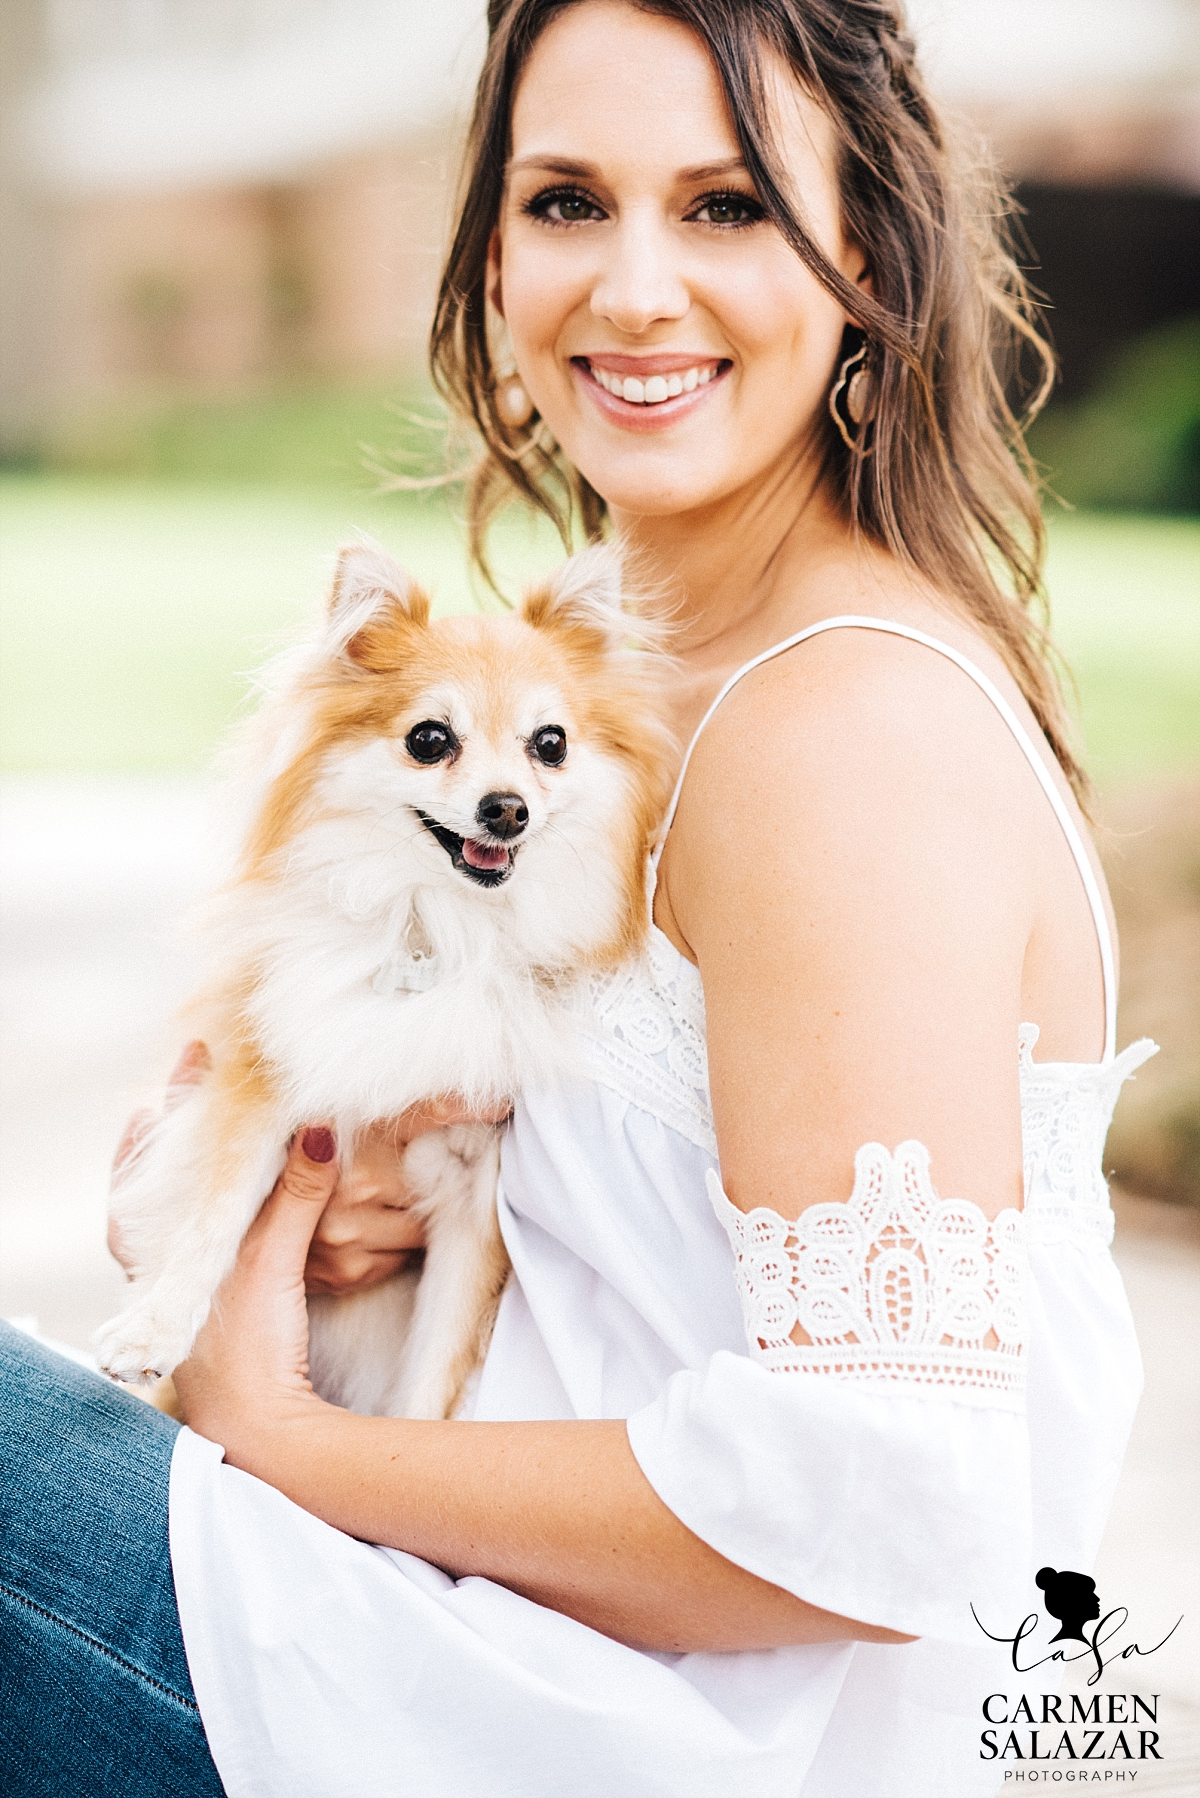 Lifestyle portrait session with Pomeranian - Carmen Salazar